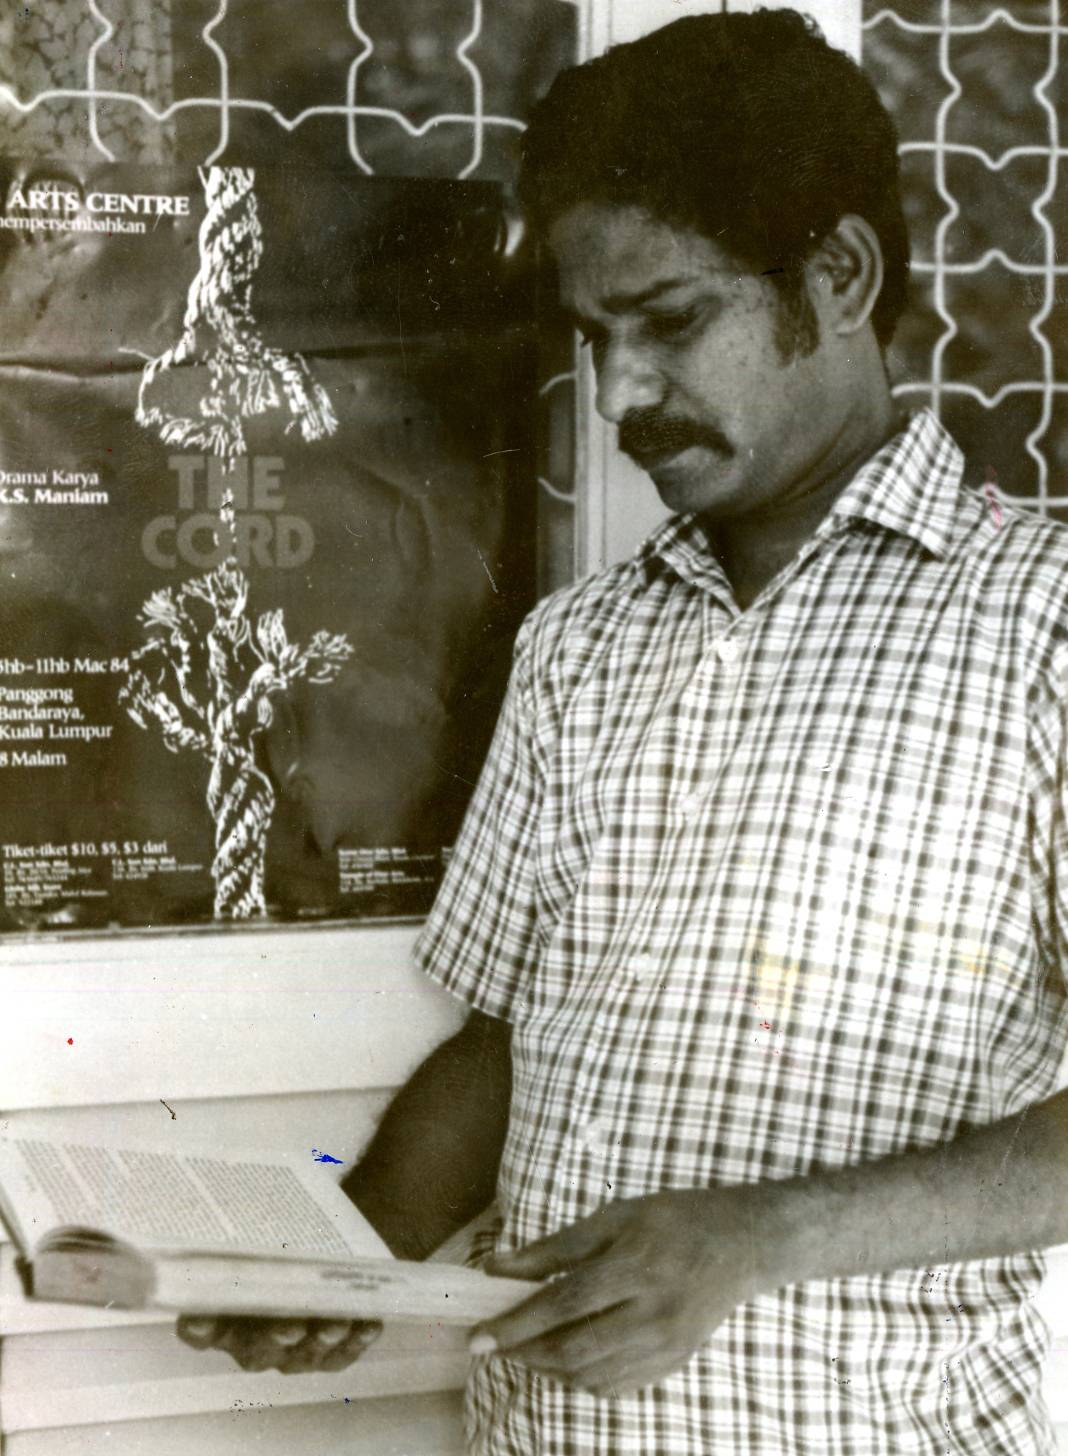 Maniam, as a playwright and founding member of Five Arts Centre, standing before a publicity poster of his play 'The Cord' in 1984. Photo: Filepic